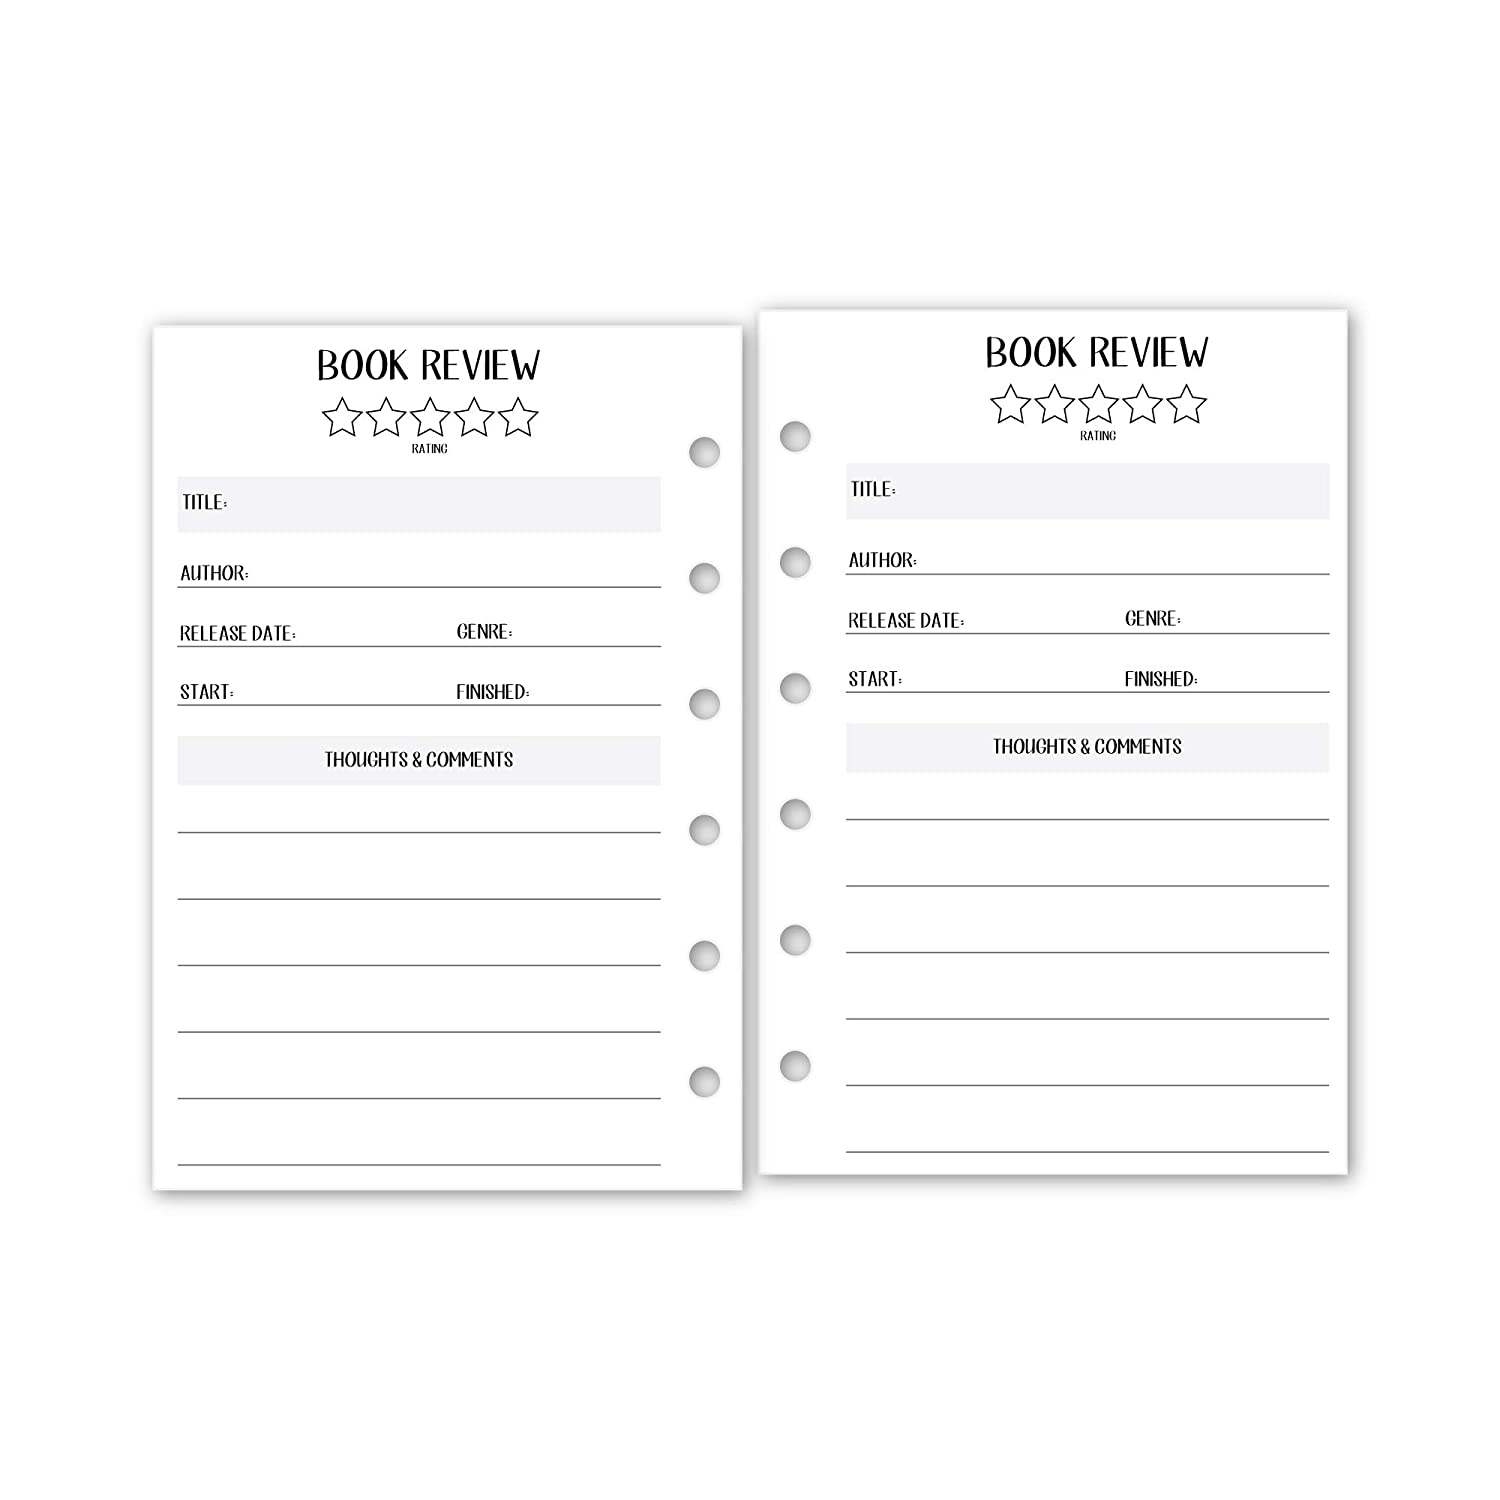 15 Double-Sided sheets fits six-ring binders Pocket size Book Review Planner insert